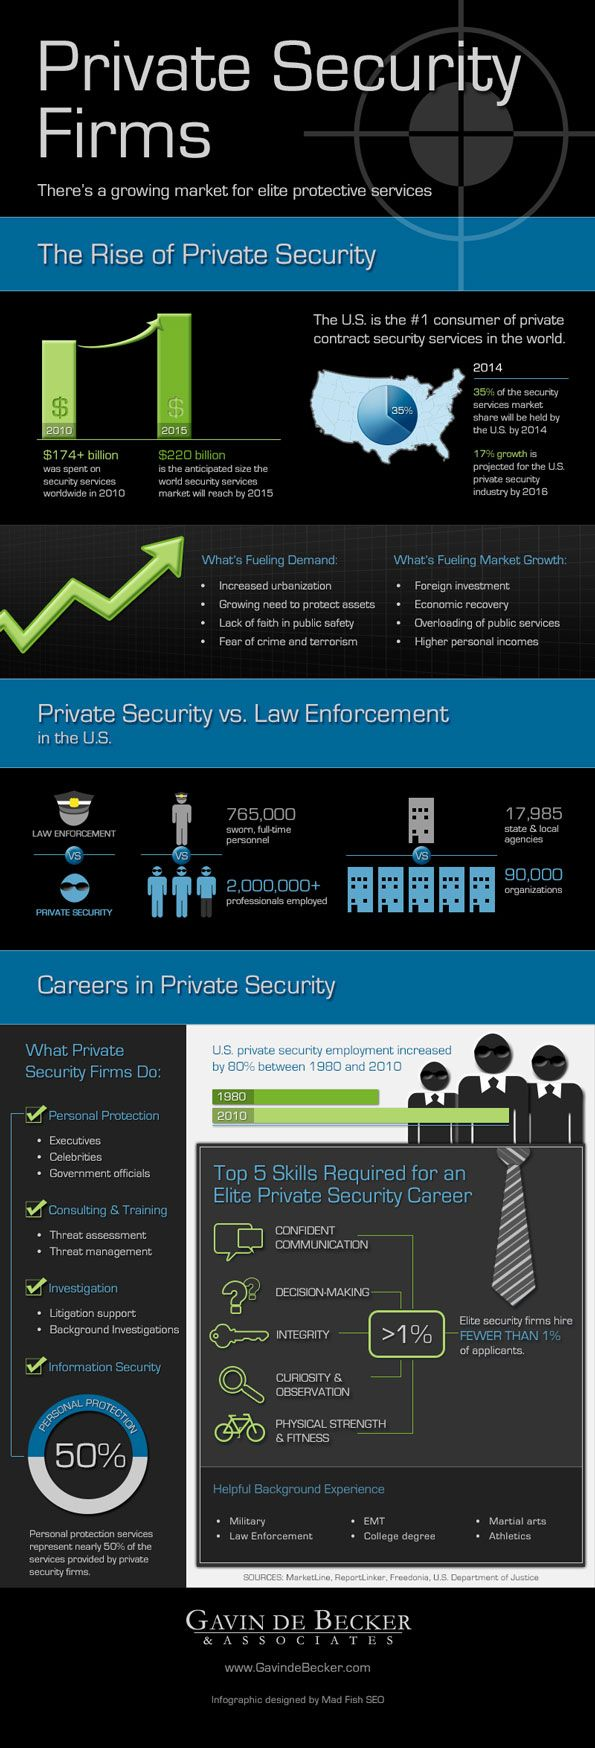 Best 25+ Security companies ideas on Pinterest | Lowes home ...